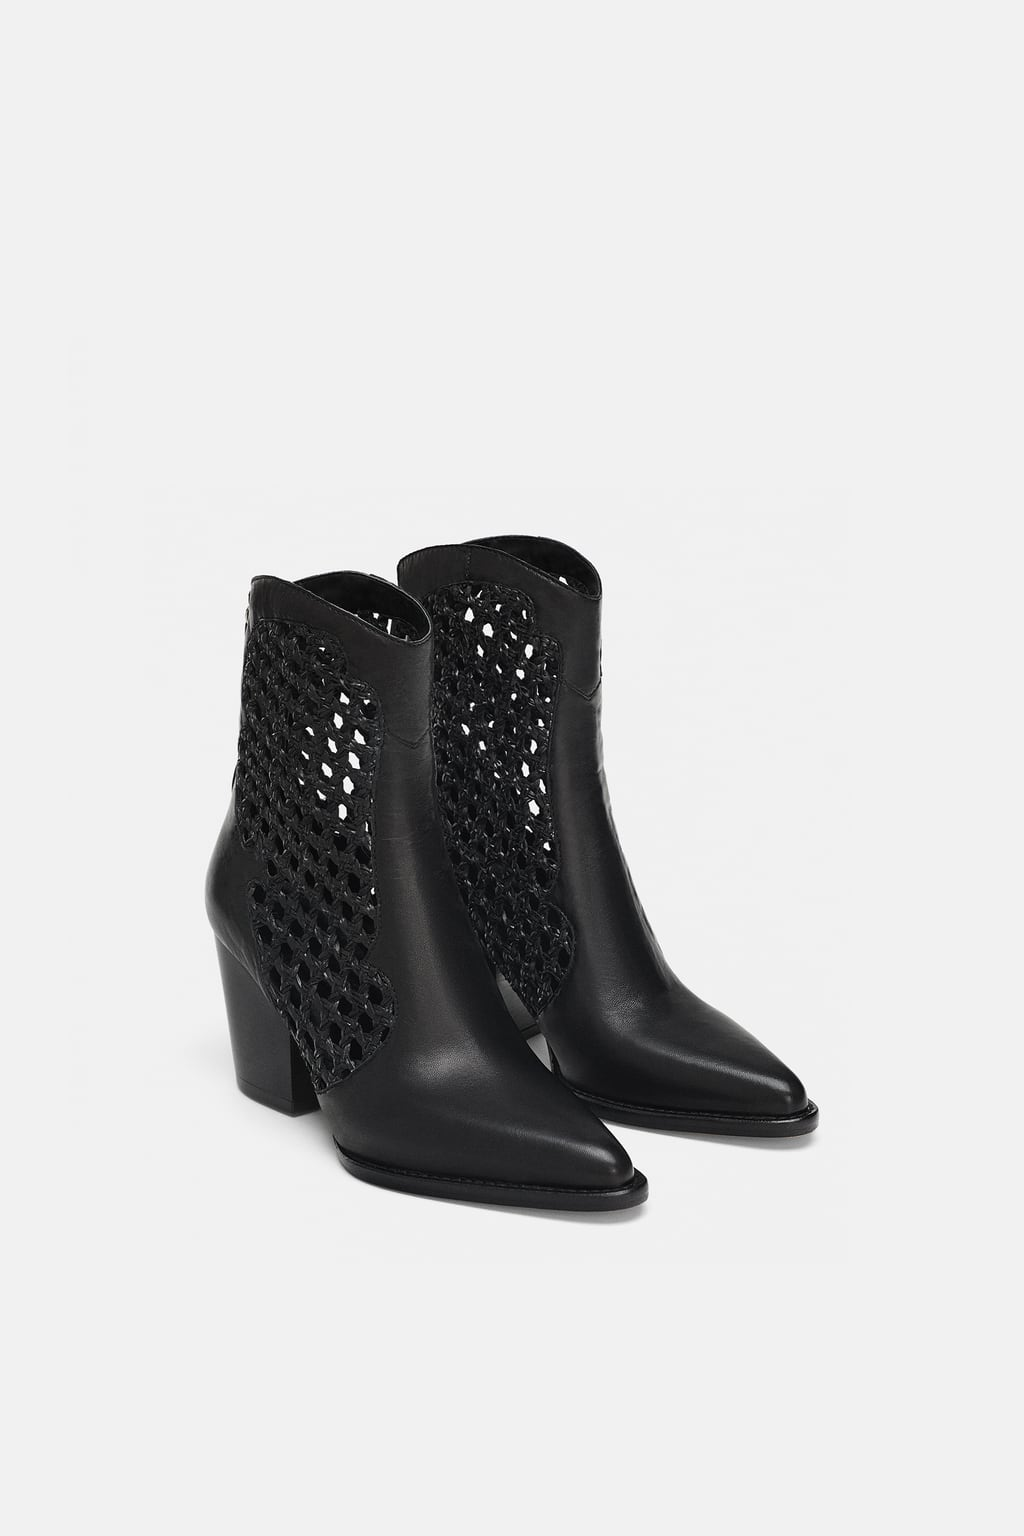 Ankle Boots - £49.99